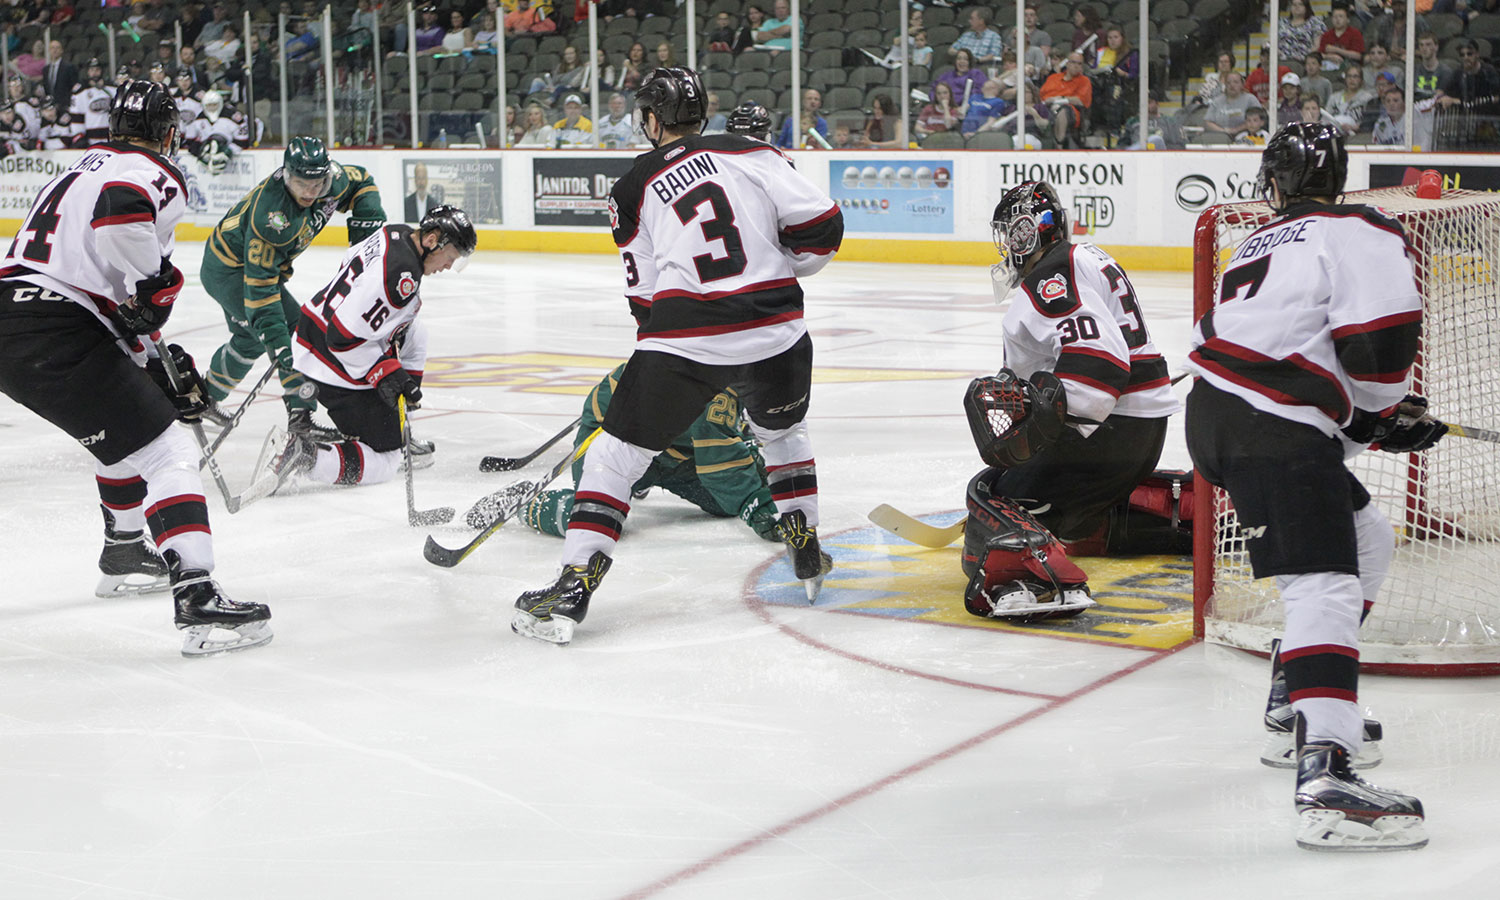 USHL: Clark Cup Final Game 3 Preview